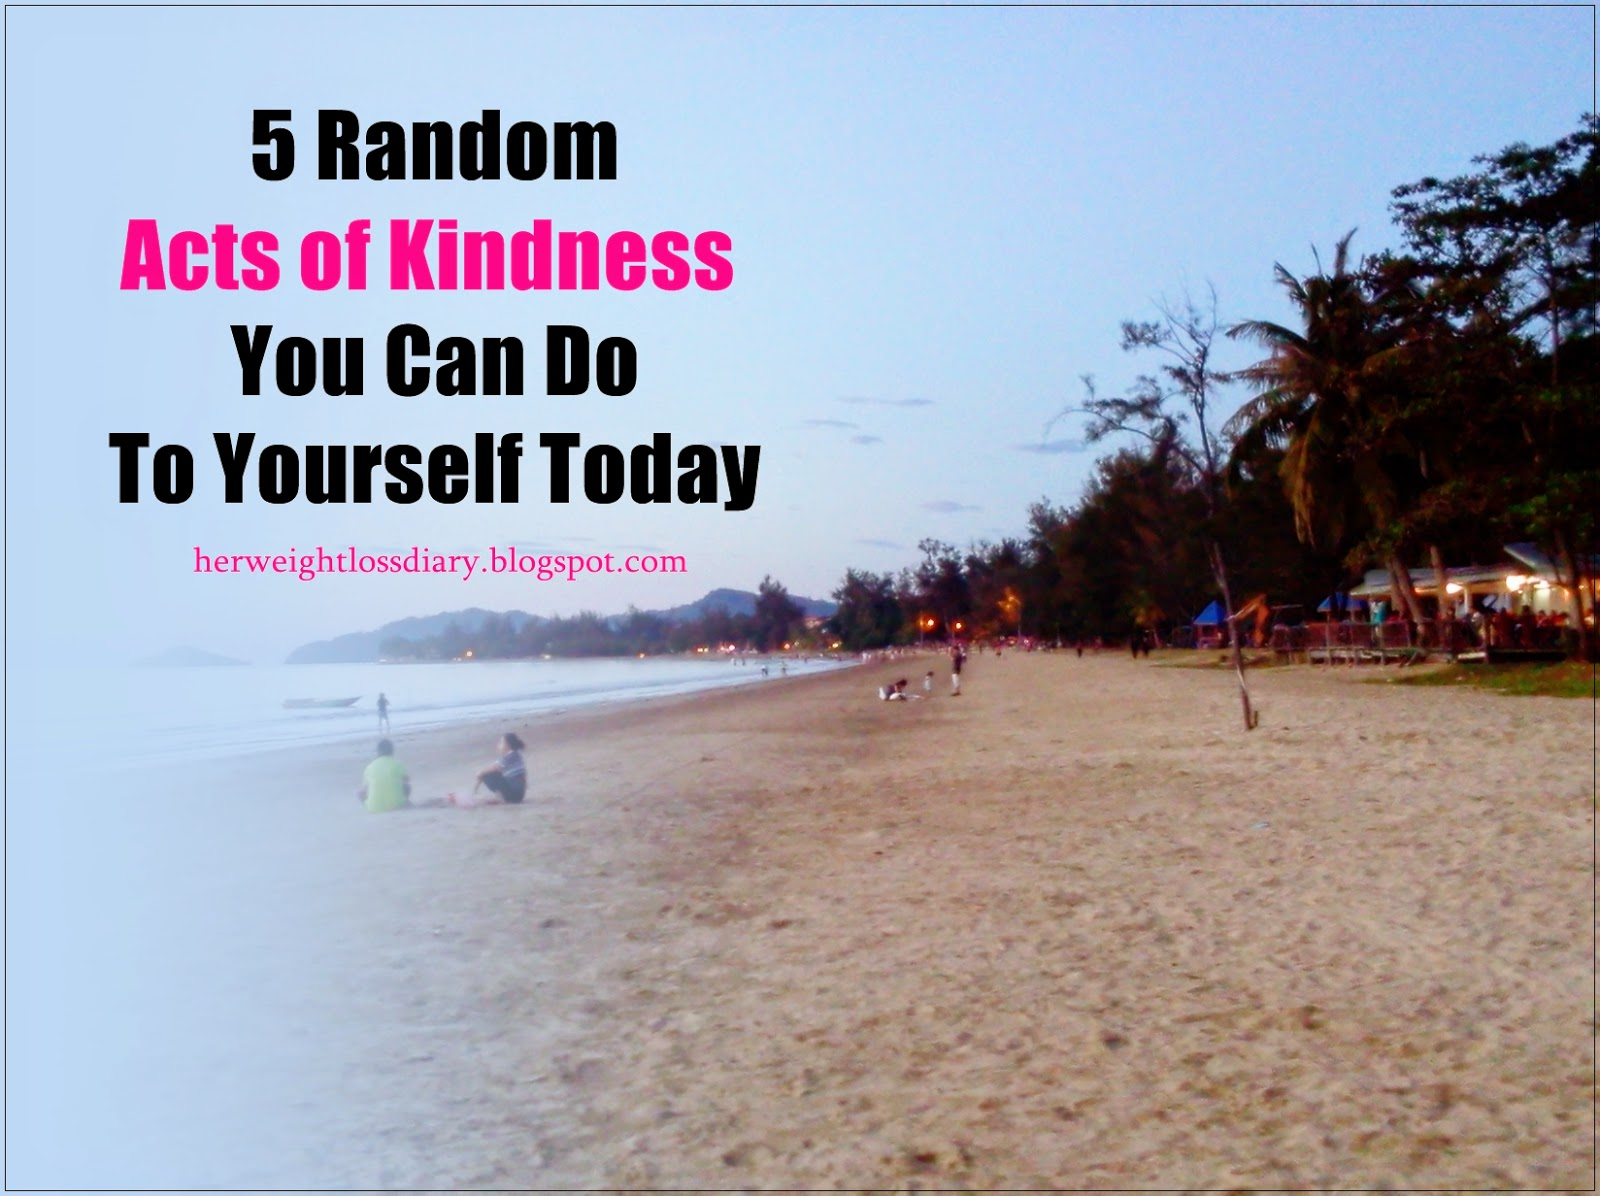 Weight Loss Help: 5 Randoms Act of Kindness You Can Do To Yourself Today